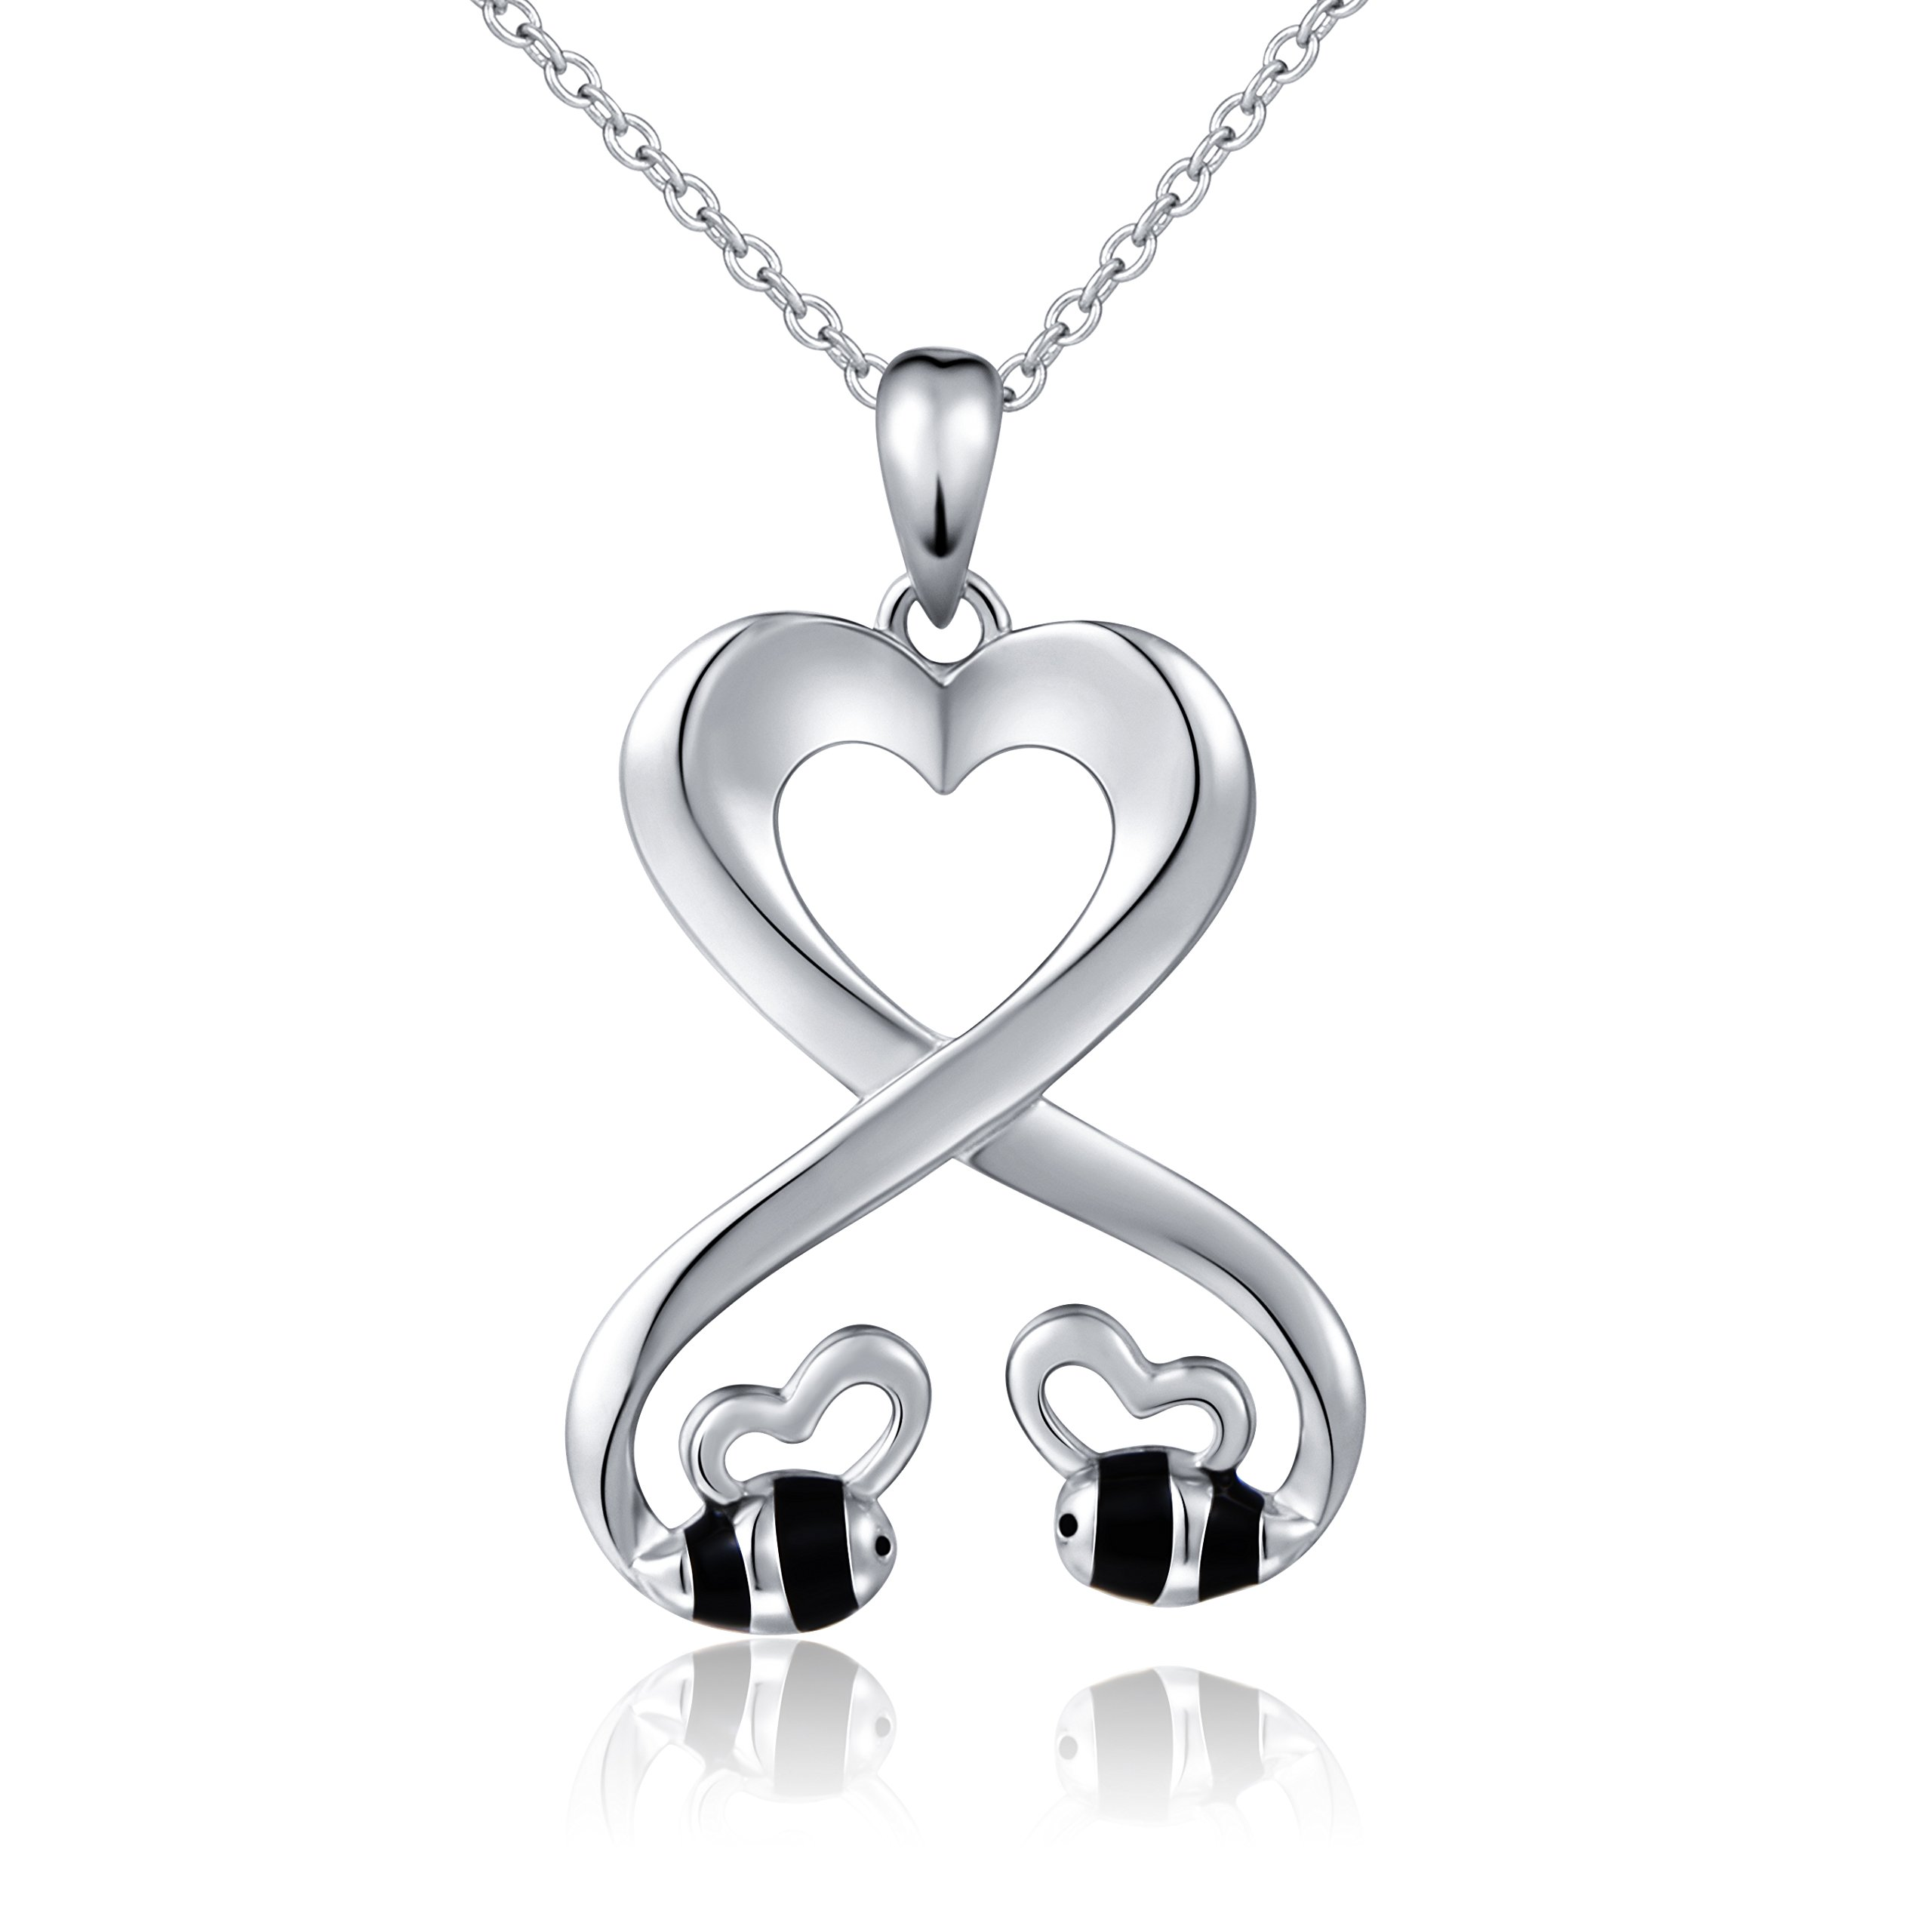 925 Sterling Silver Double Bees Infinity Love Heart Pendant Necklace for Girlfriend, 18'' by SILVER MOUNTAIN (Image #1)